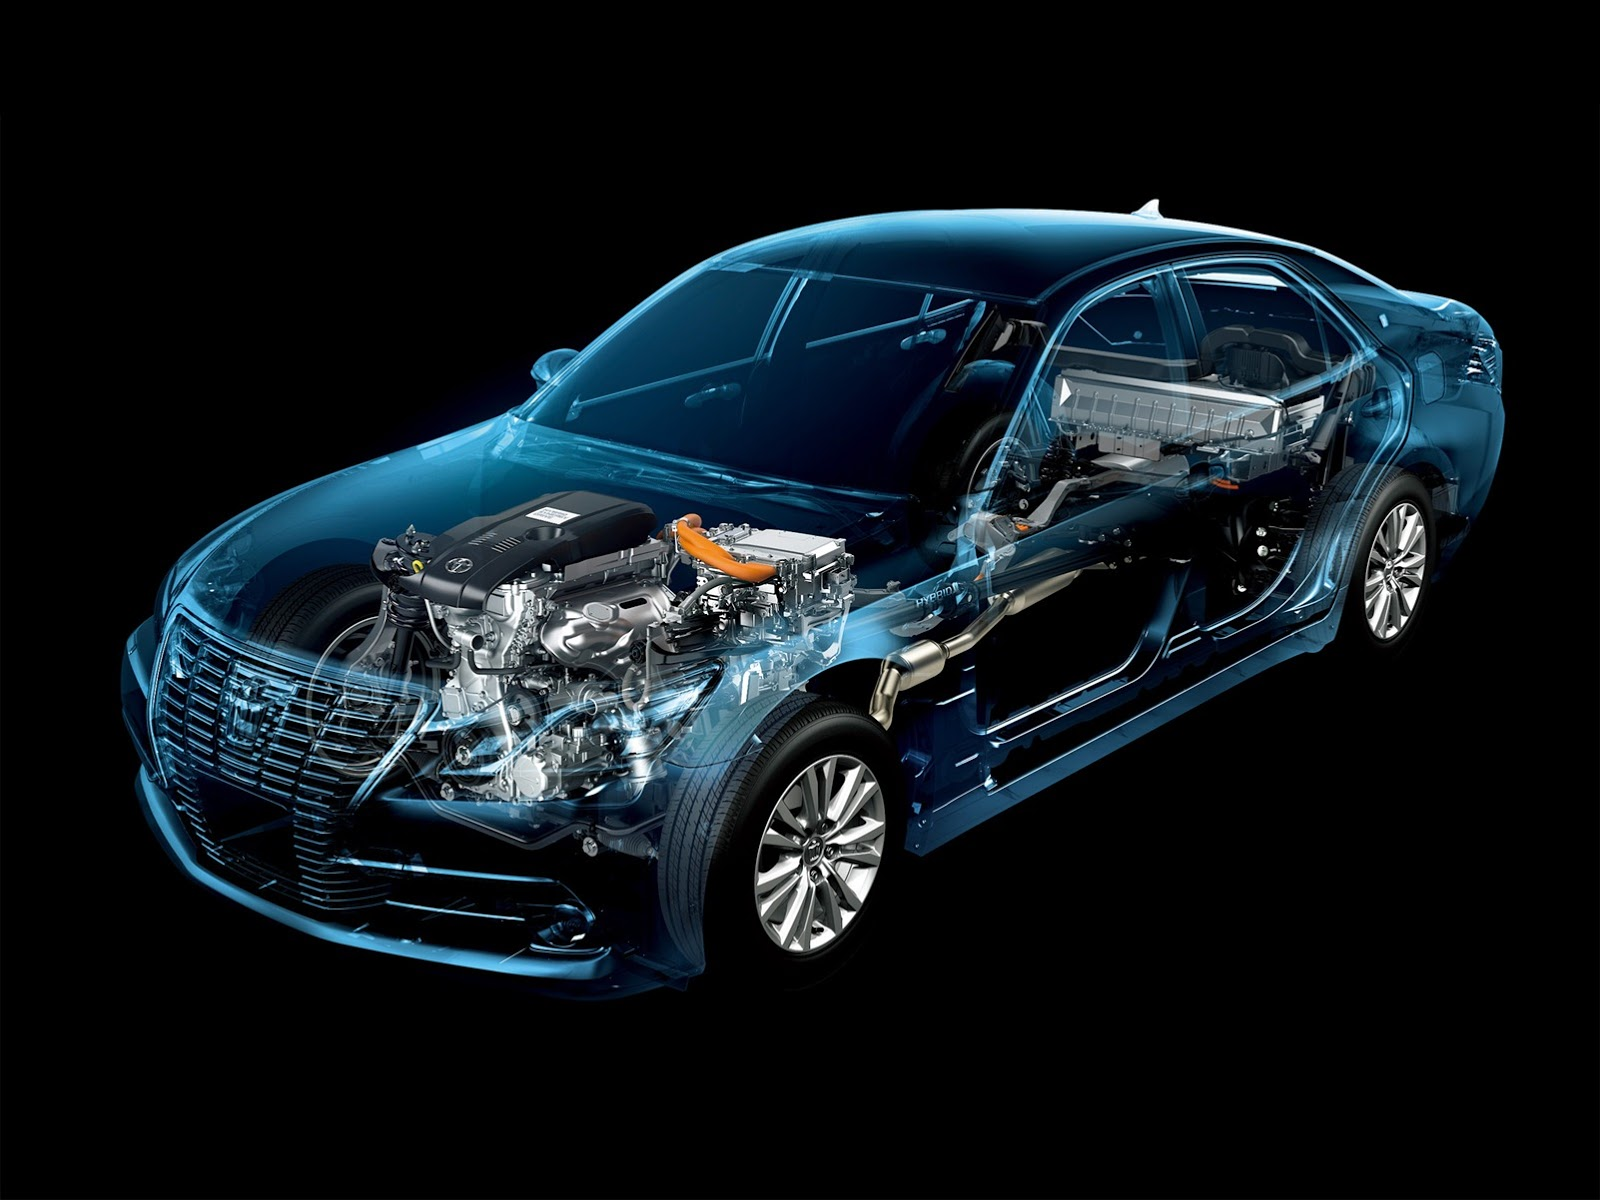 Toyota Crown 2014 >> 2013 Toyota Crown Royal and Athlete Revealed - autoevolution